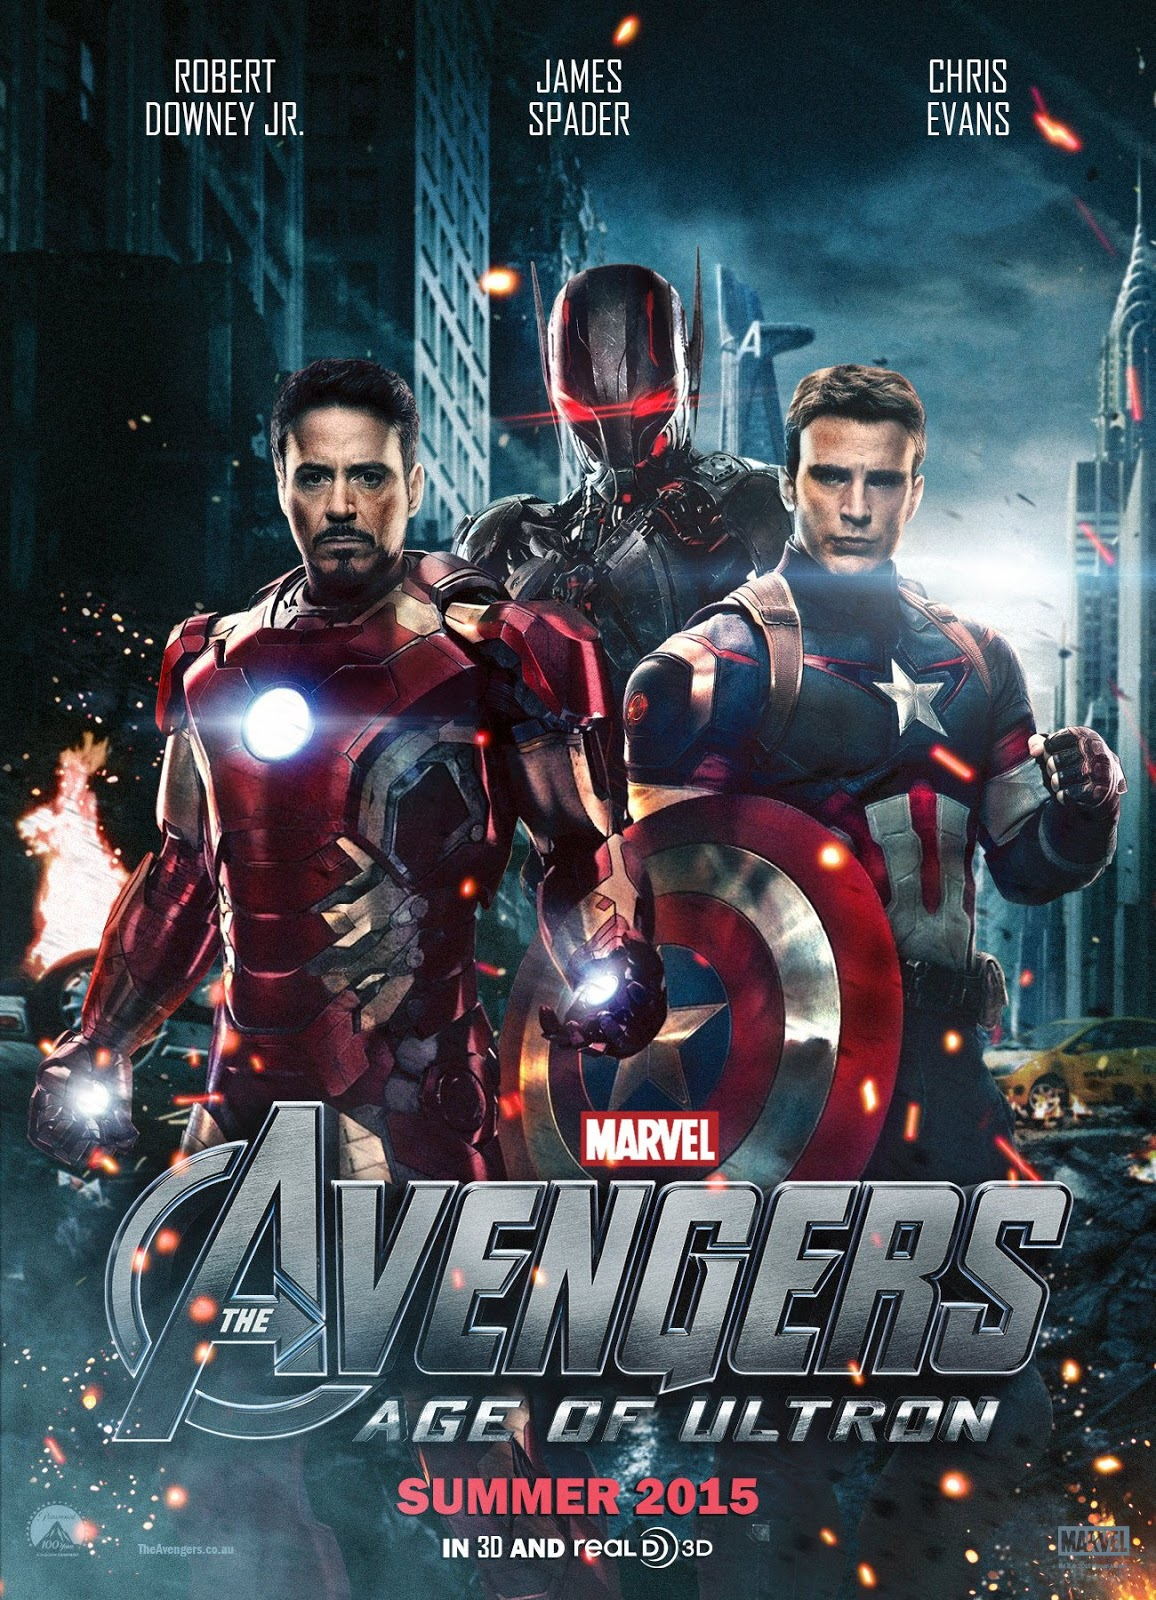 Download Film Avengers Age Of Ultron 2015 Bluray 720p Subtitle